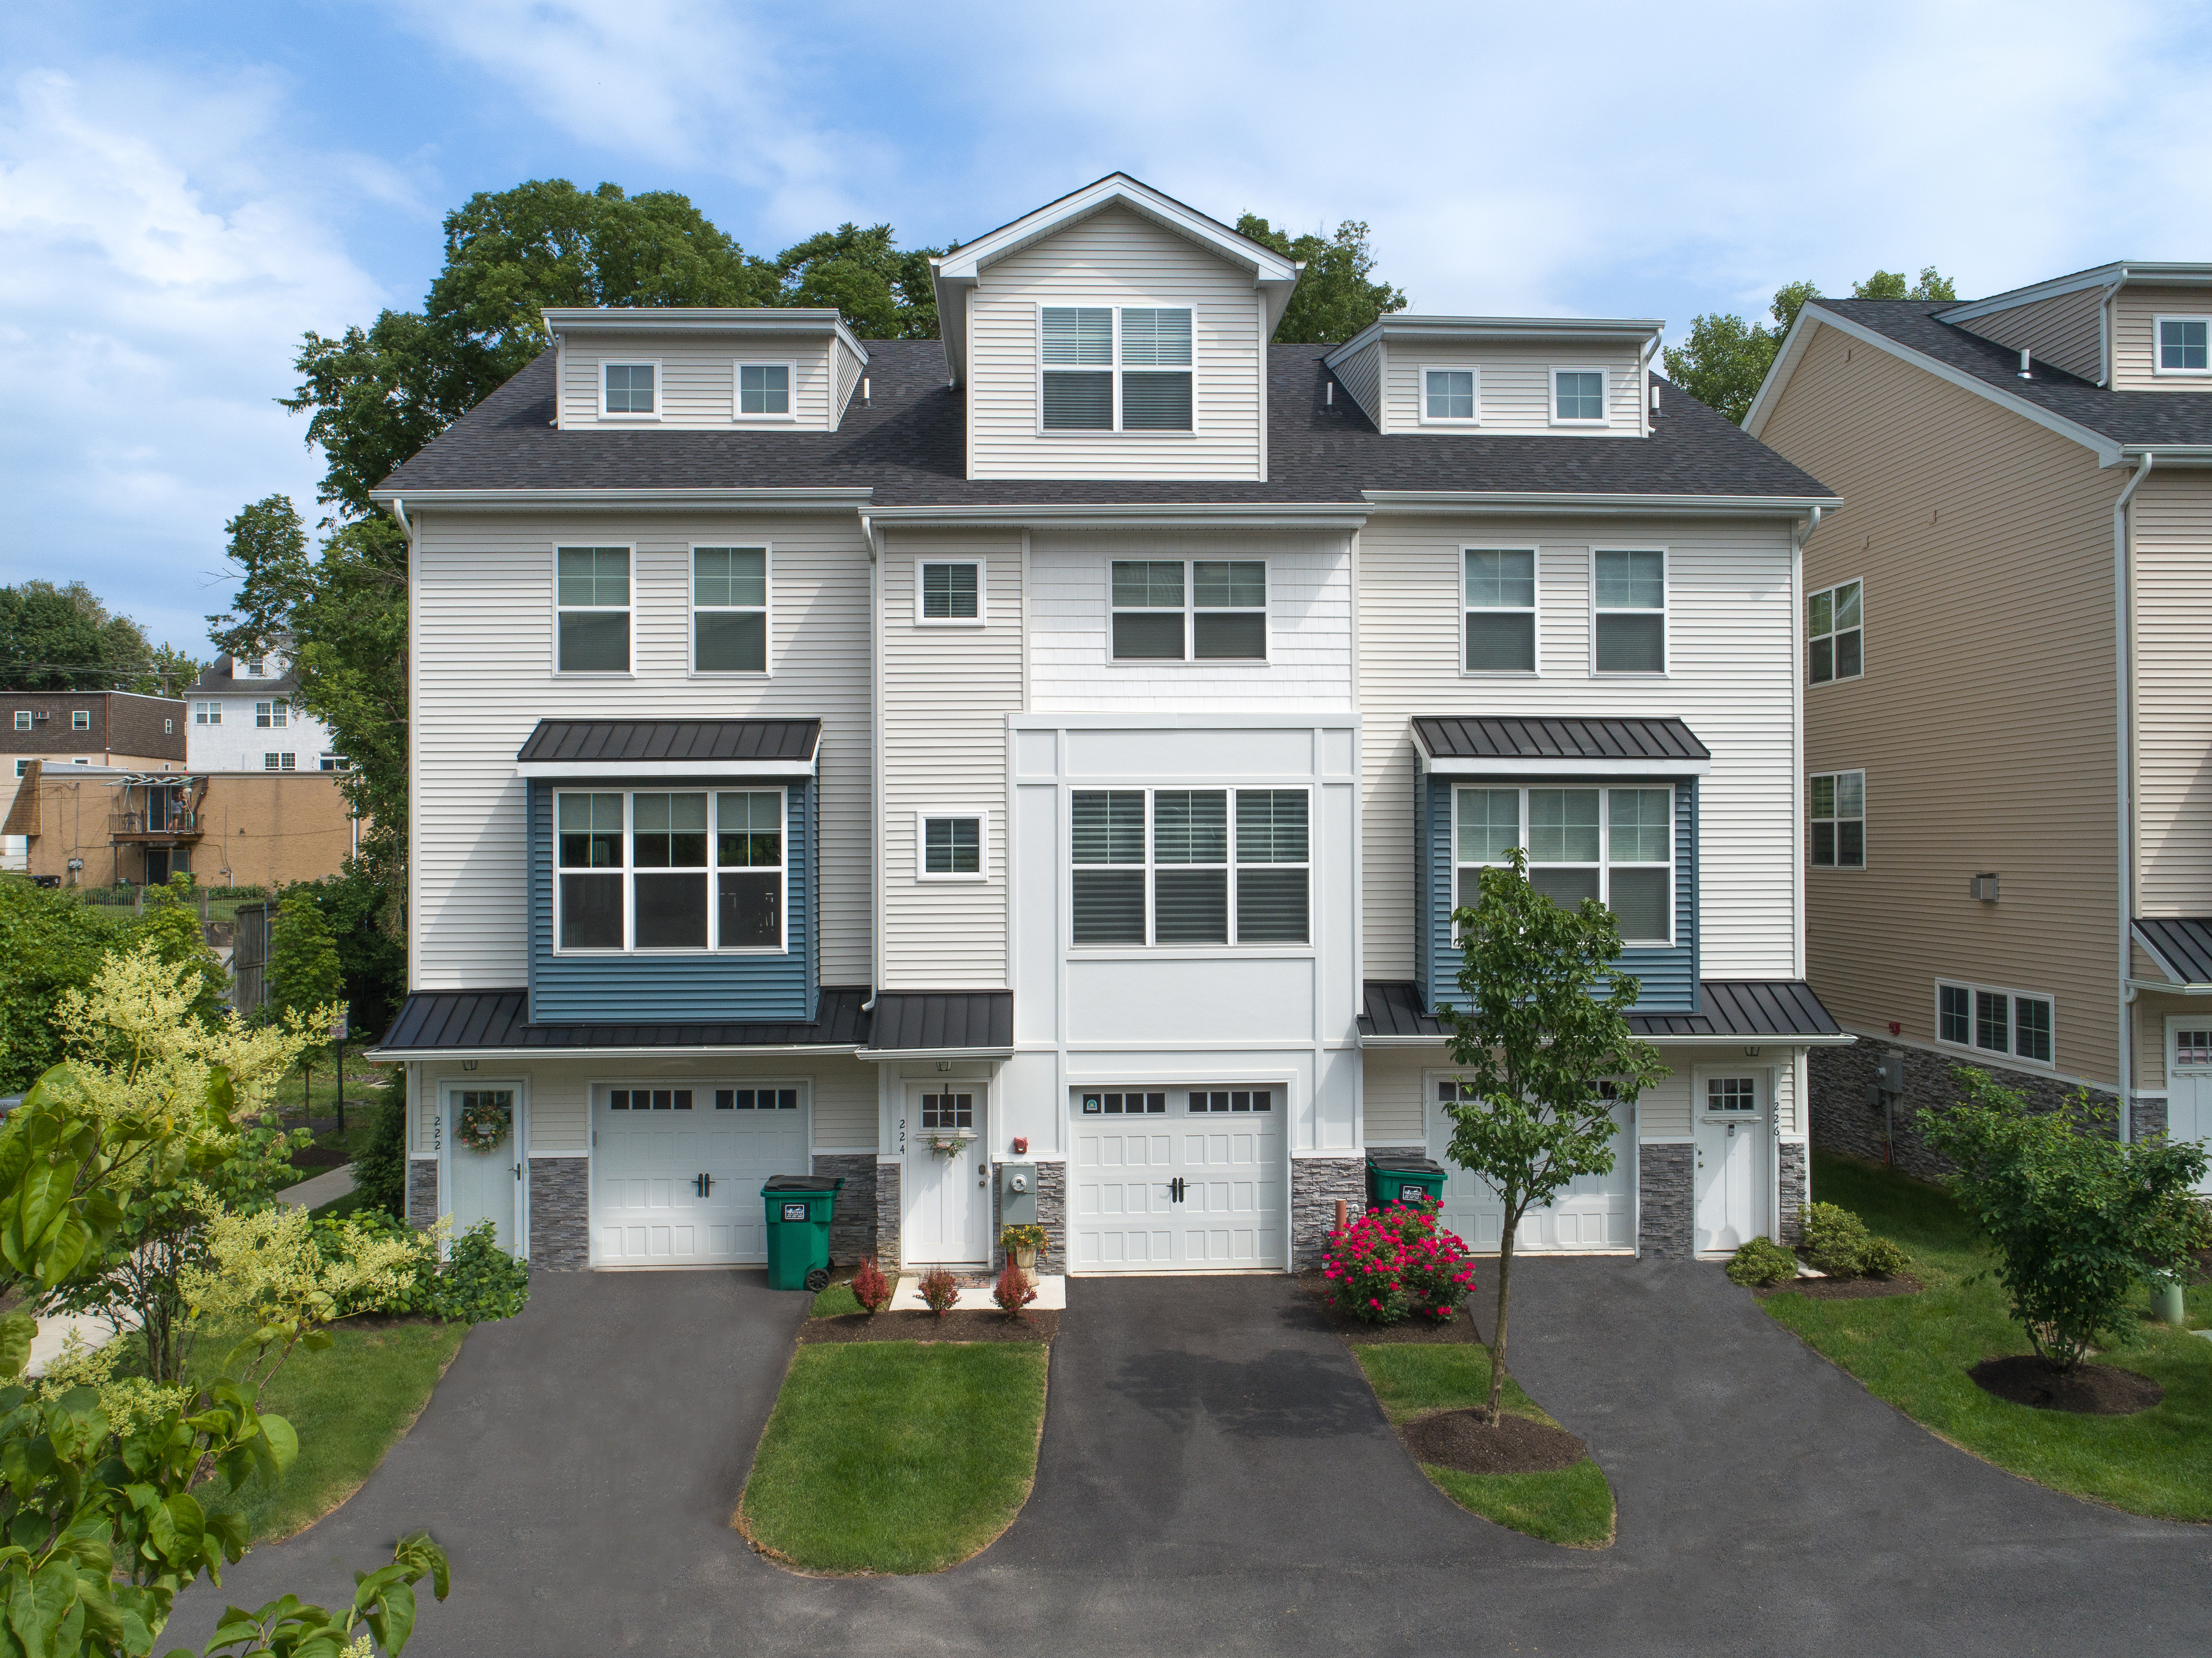 Townhomes at Conshohocken